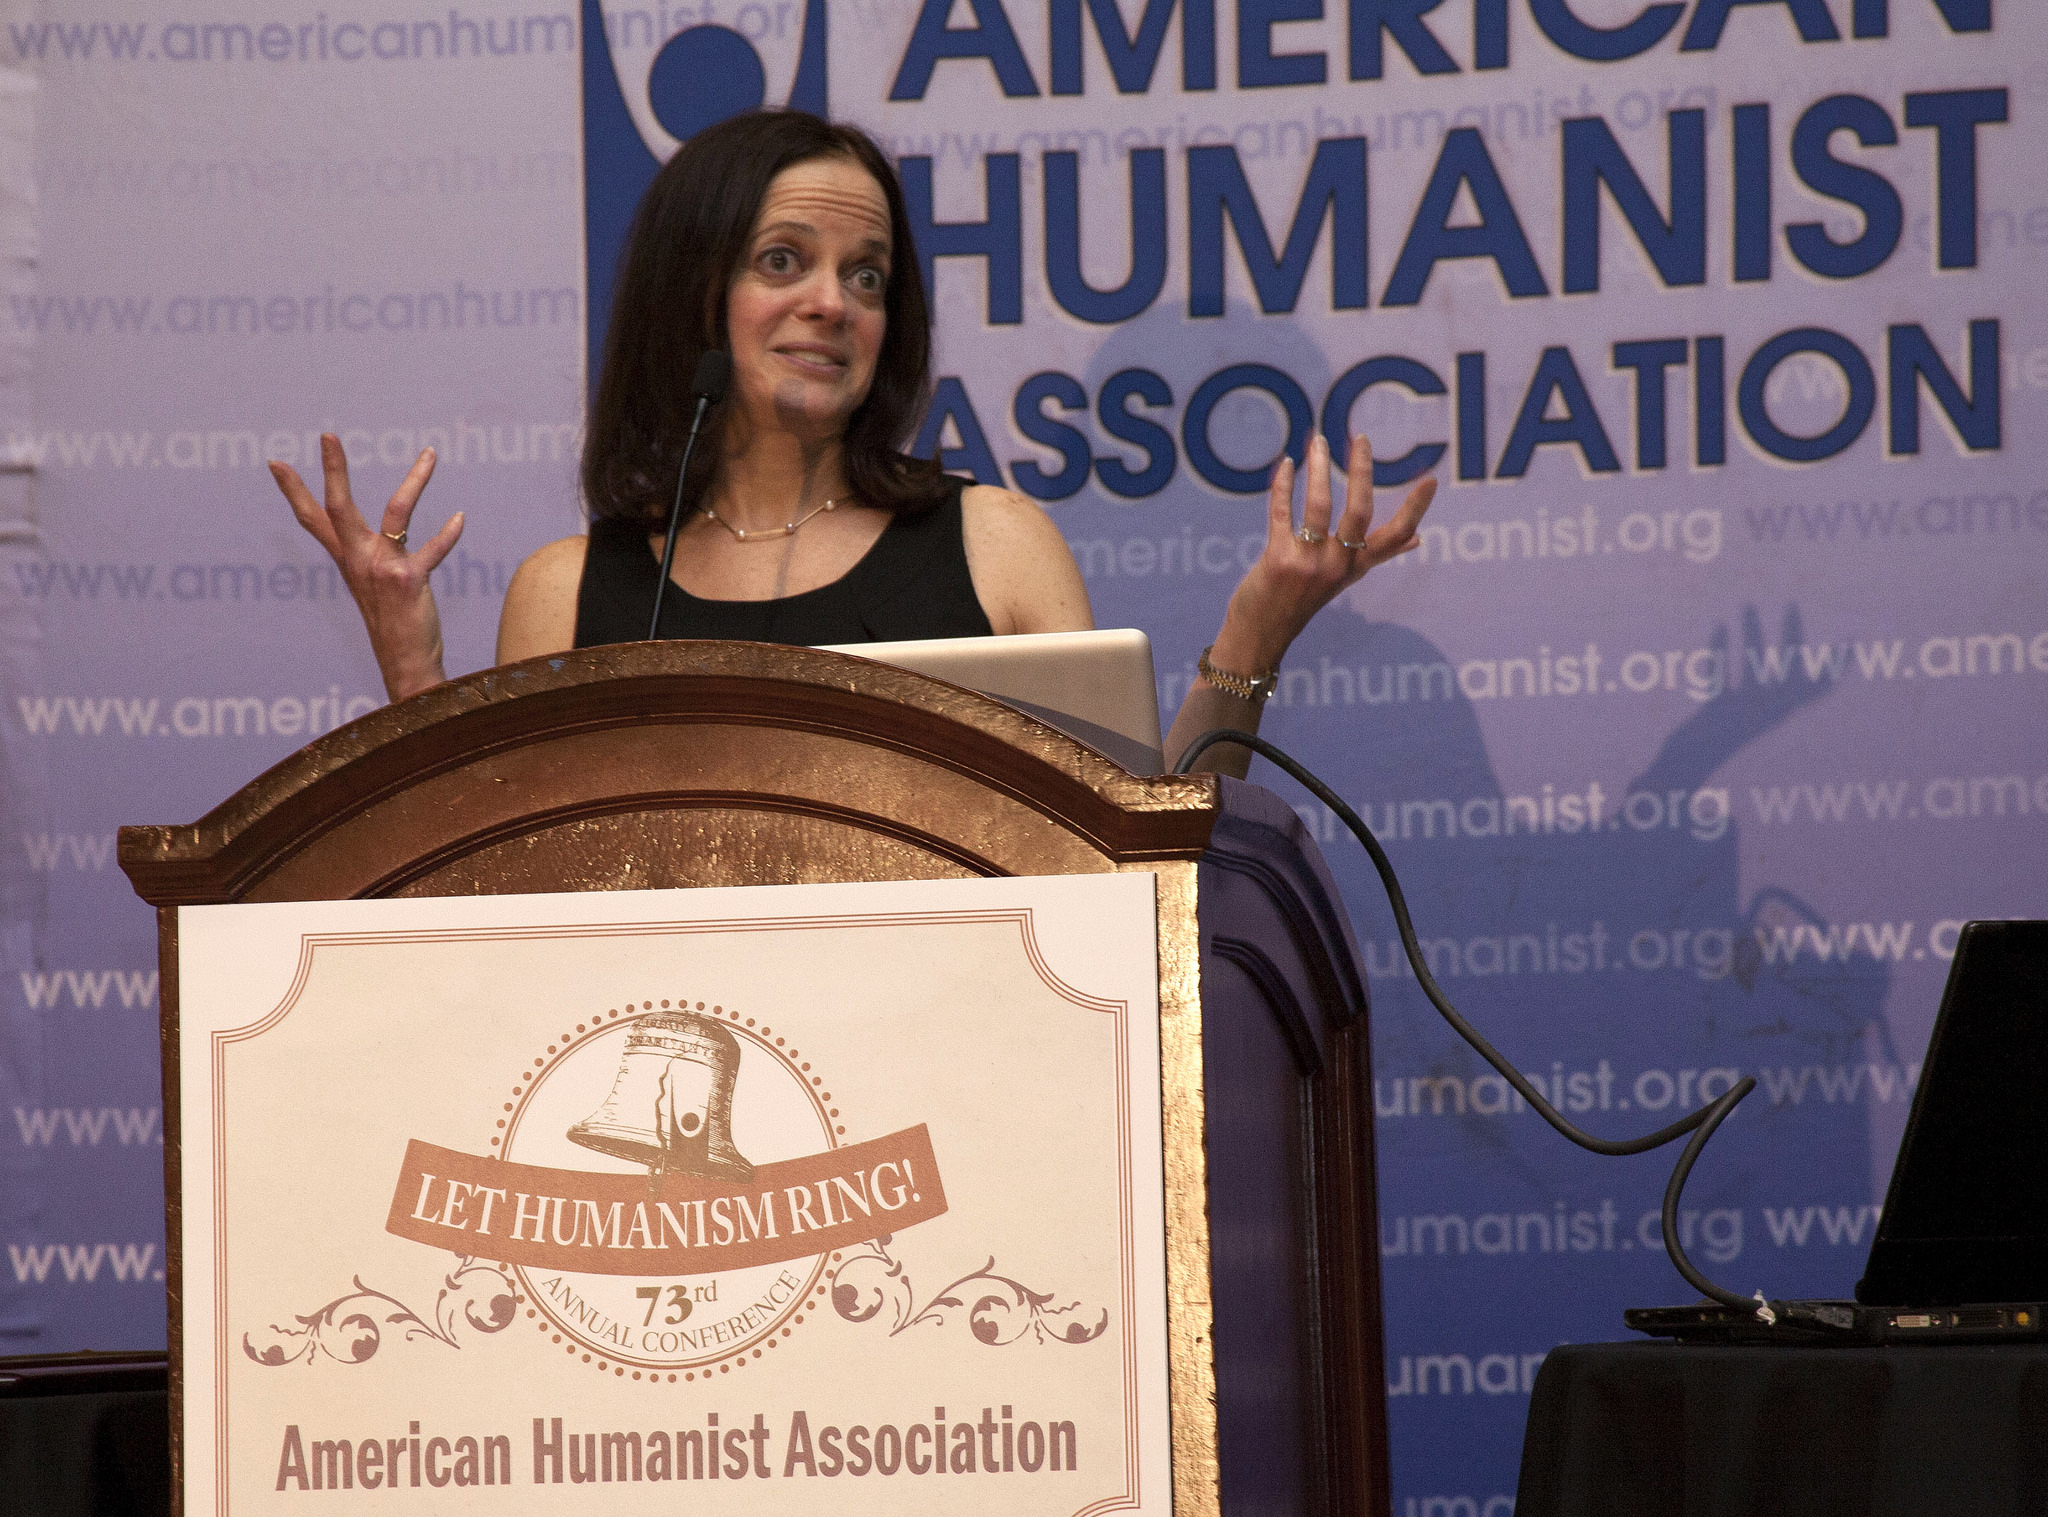 Natalie Angier, Humanist Media Award recipient